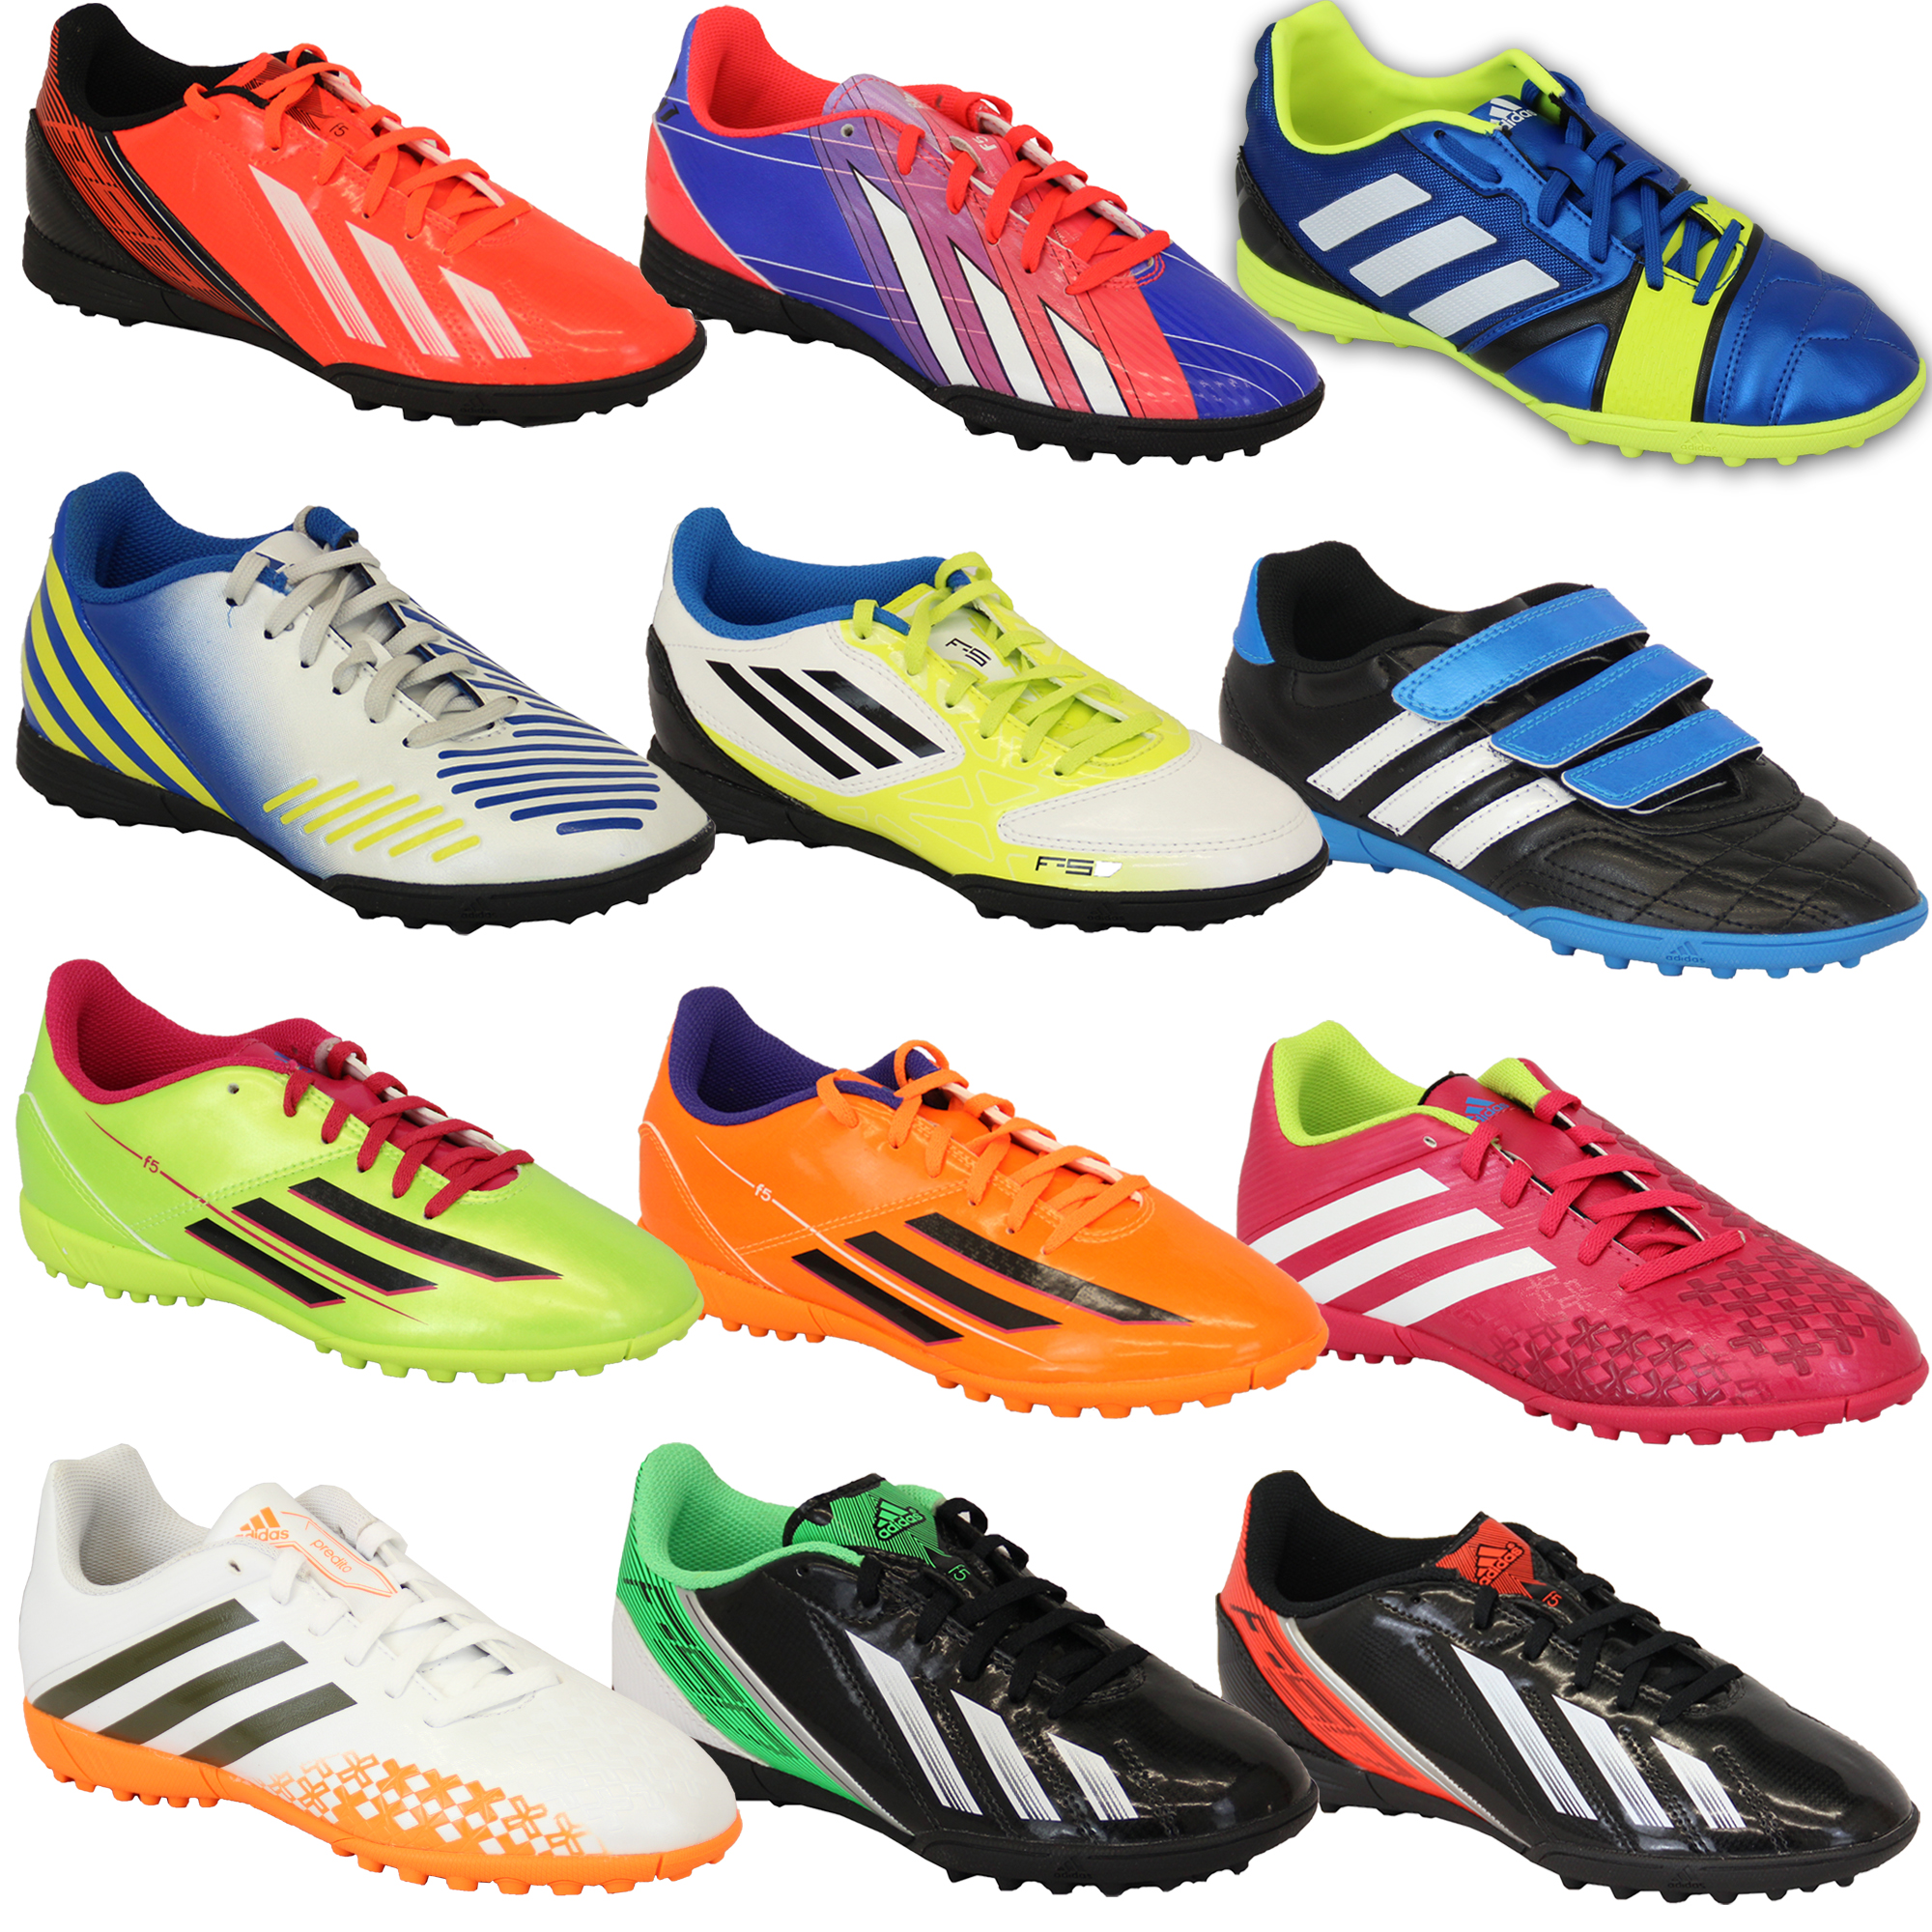 Boys ADIDAS Trainers Kids Football Soccer Astro Turf Shoes Lace Up ...